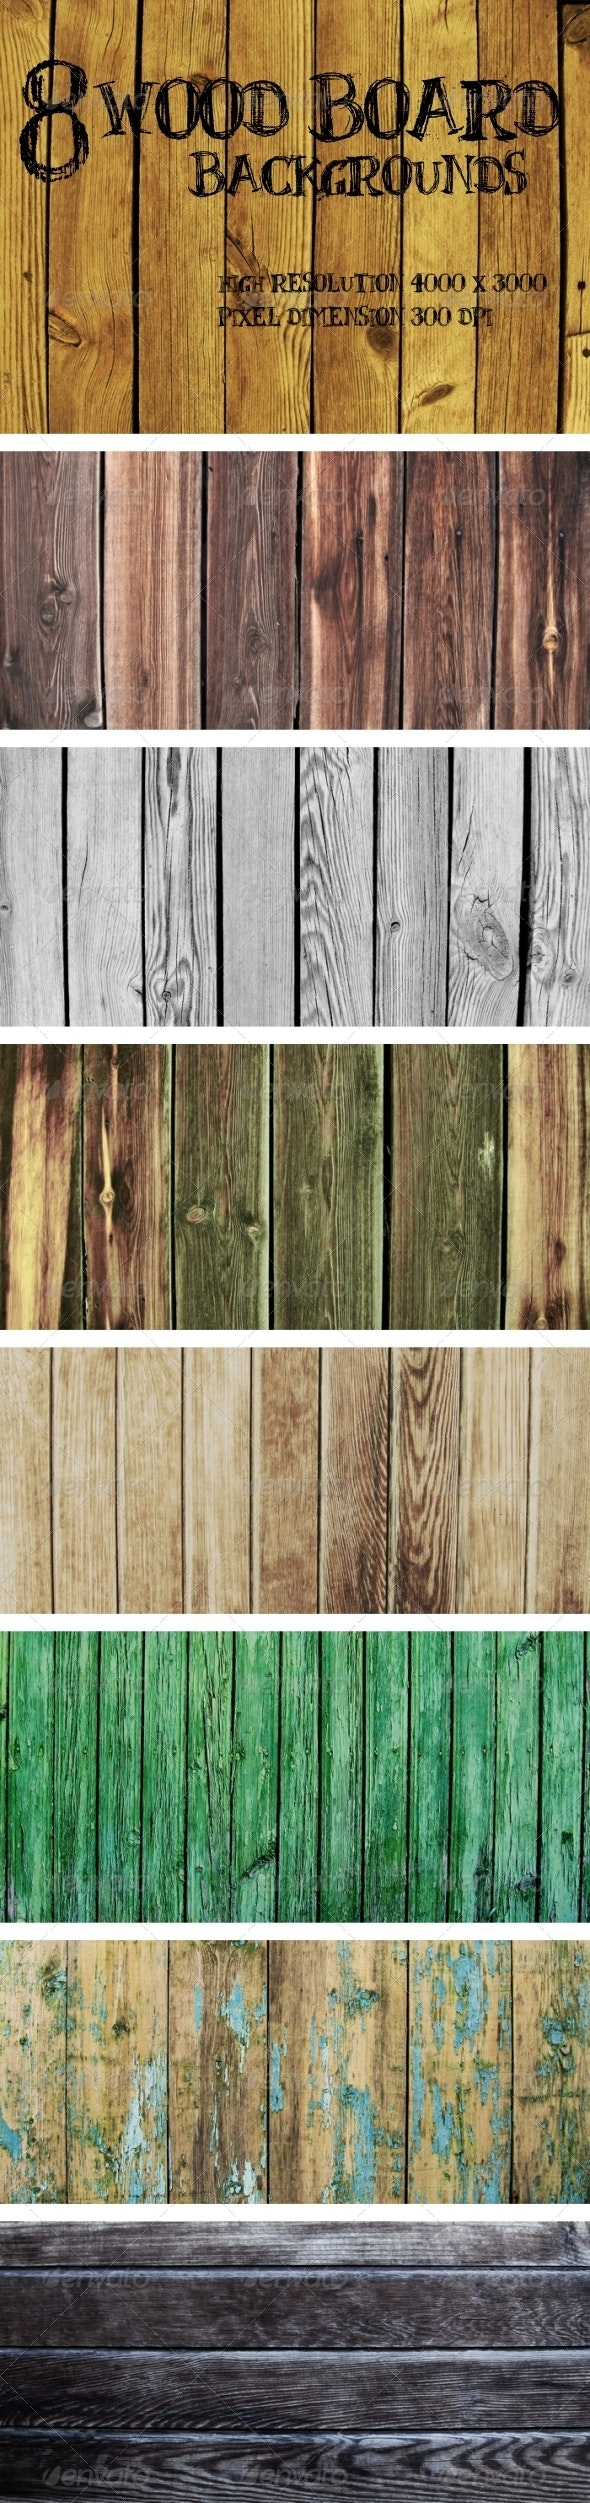 Wood Board Backgrounds - Wood Textures